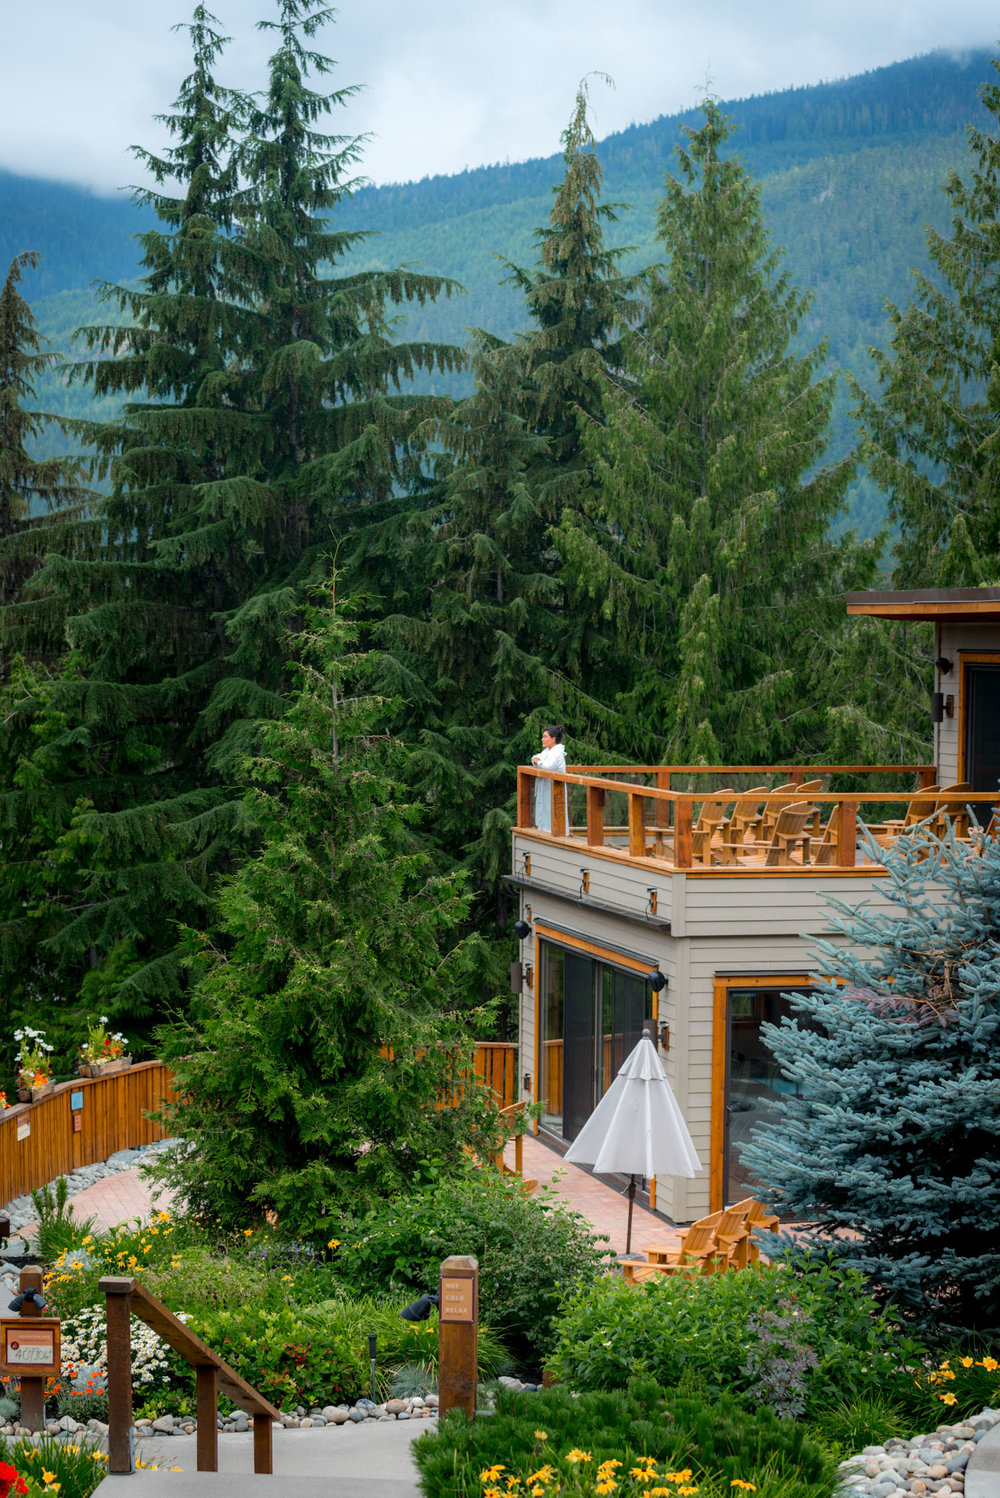 Views of Scandinave Spa in Whistler, Canada